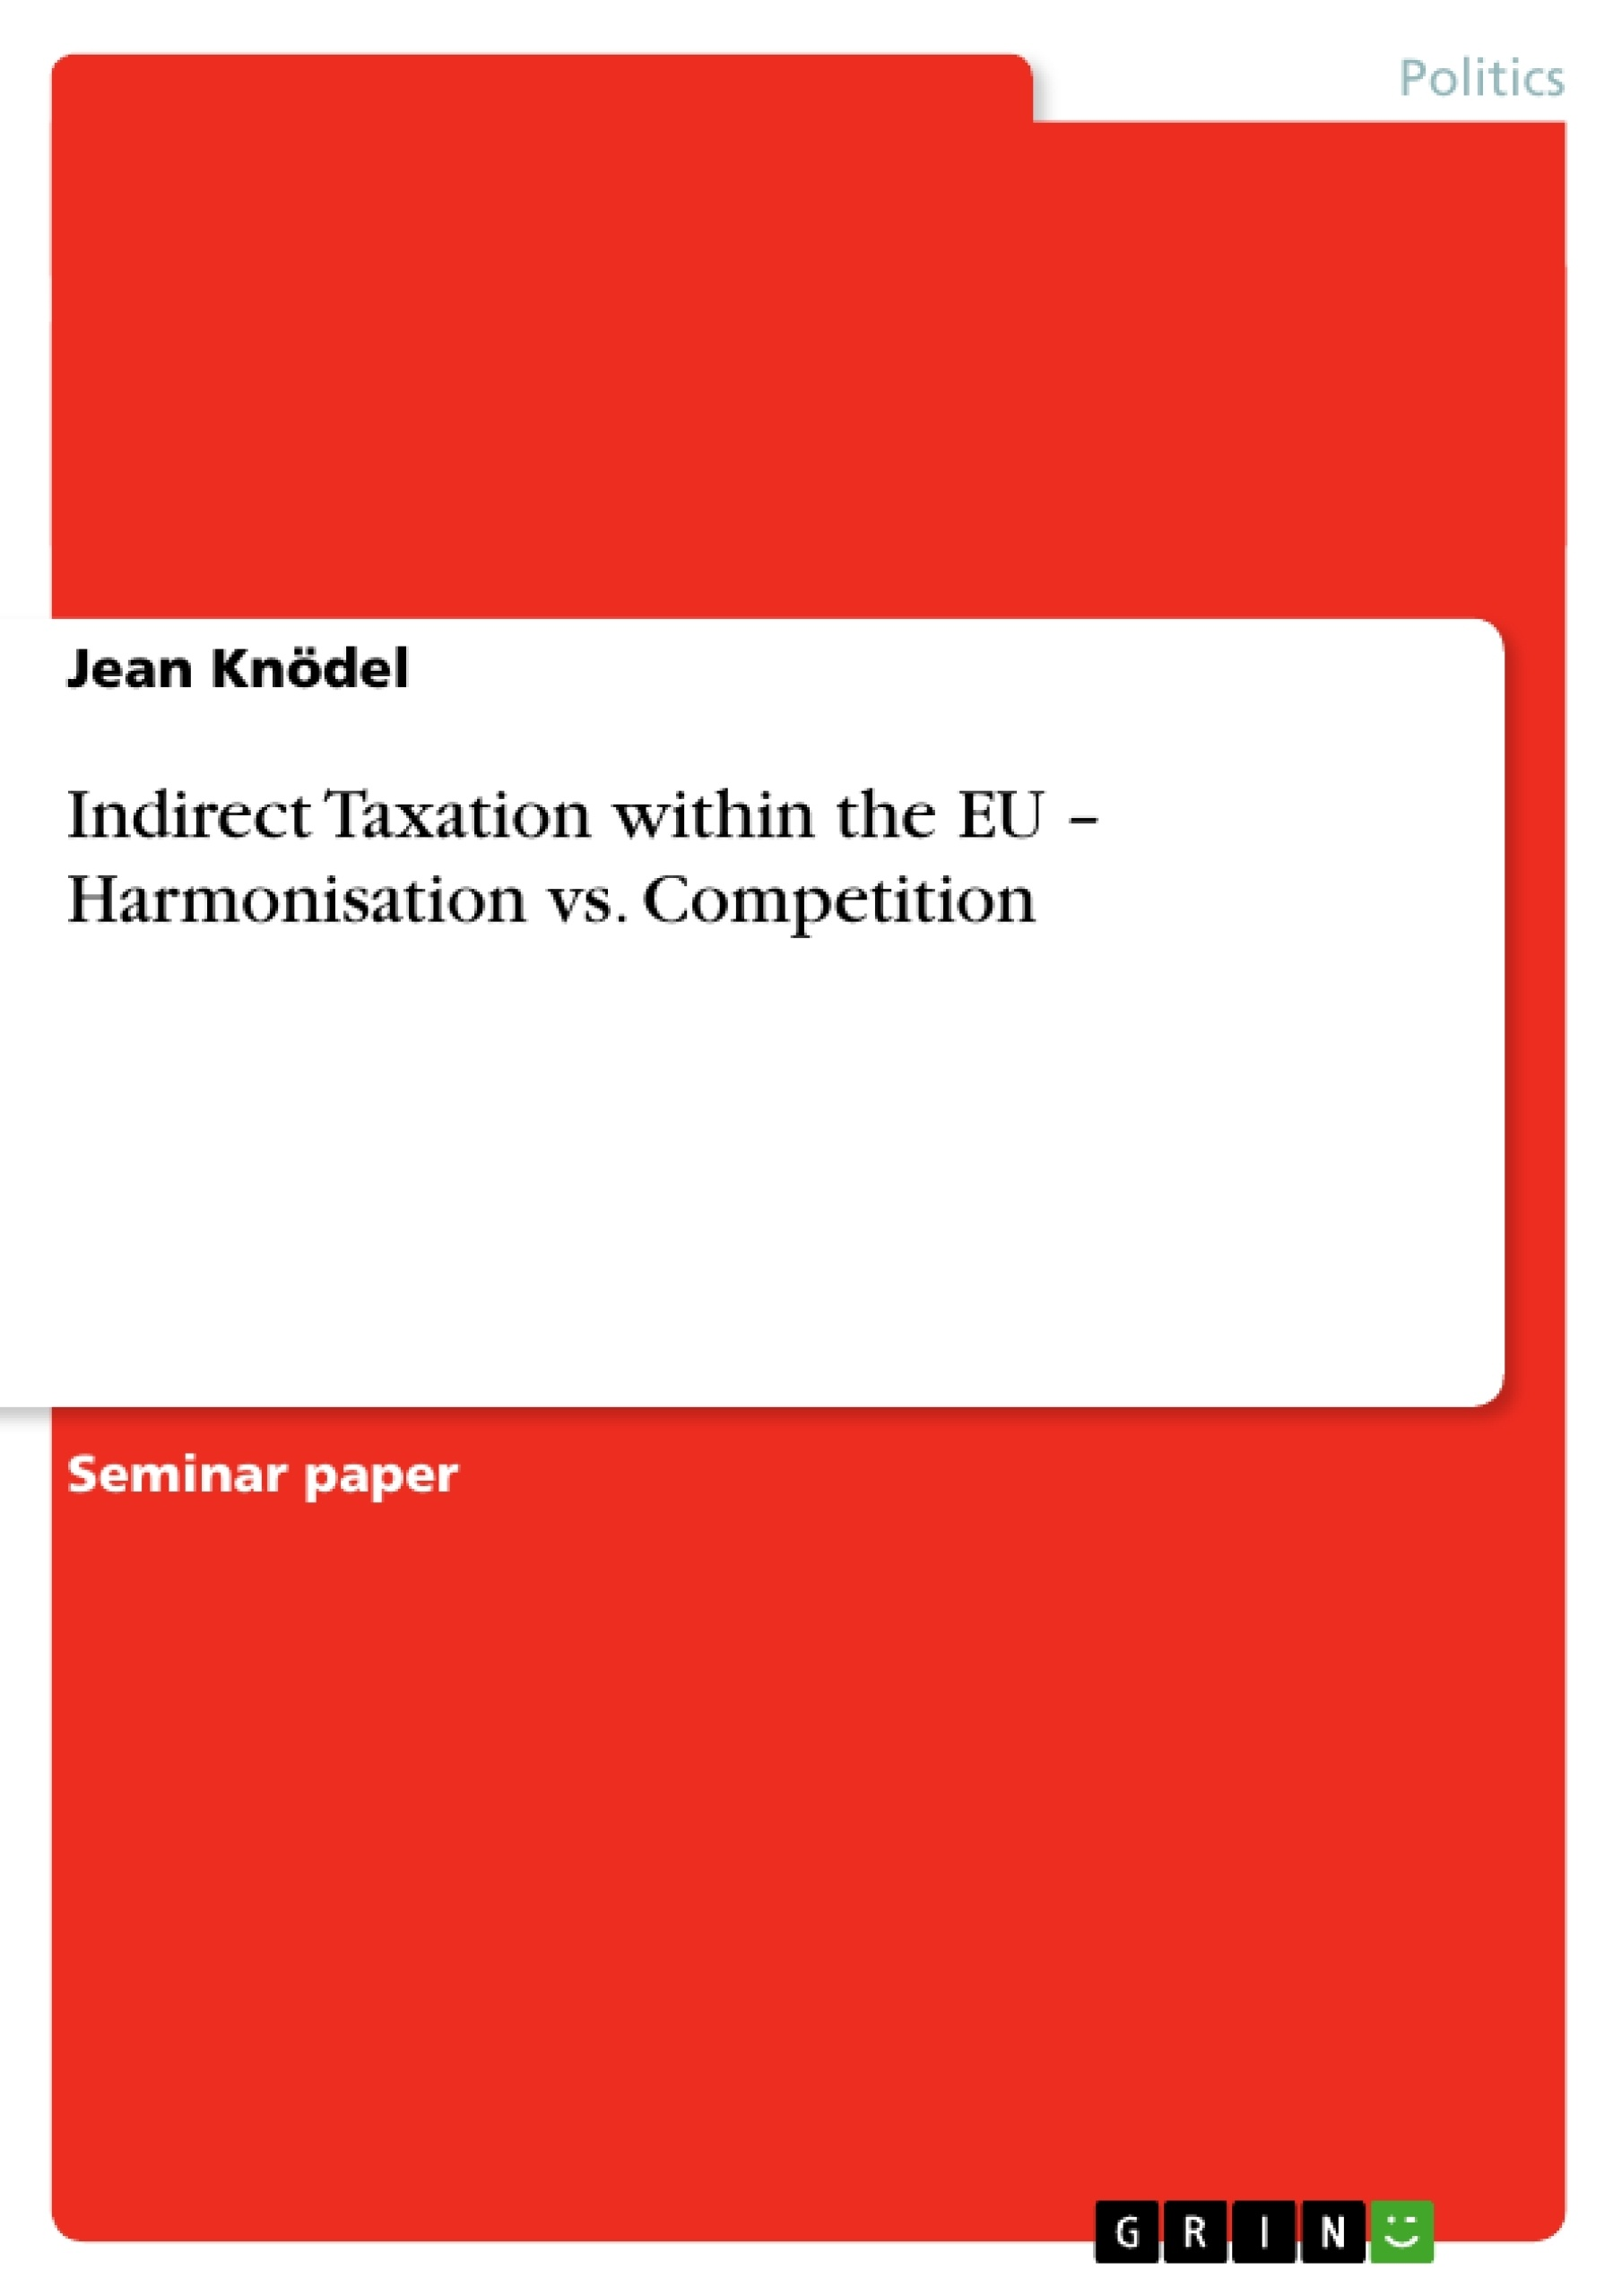 Title: Indirect Taxation within the EU –  Harmonisation vs. Competition